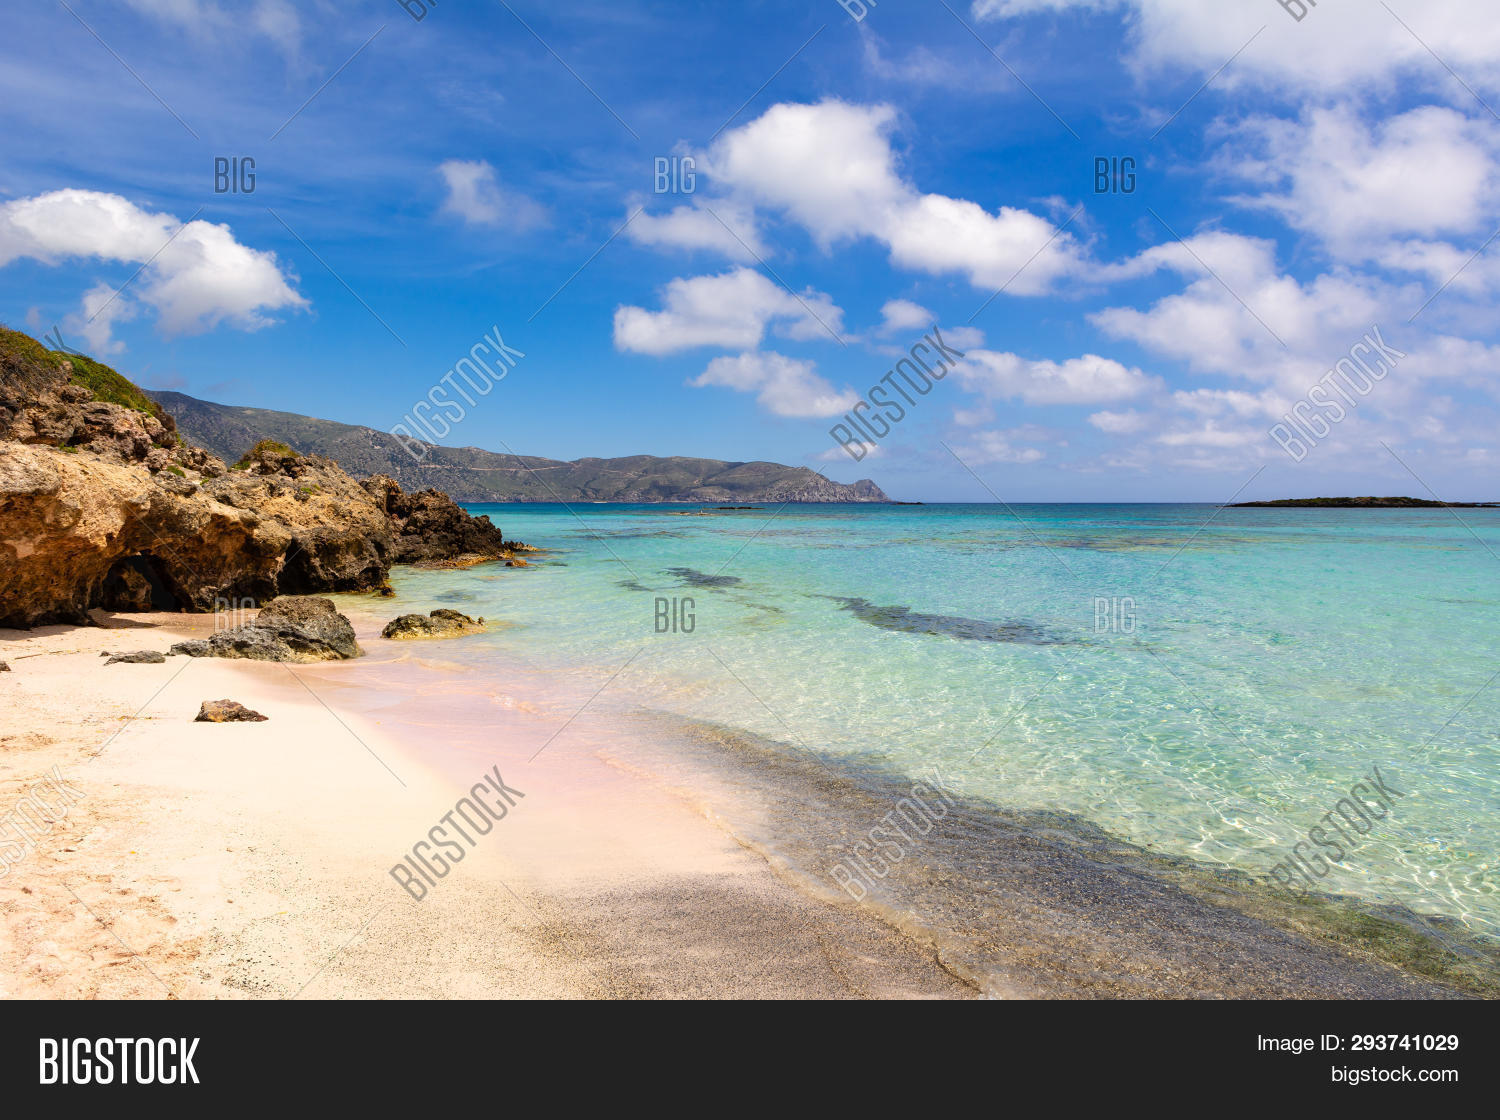 Elafonisi Beach Pink Image Photo Free Trial Bigstock